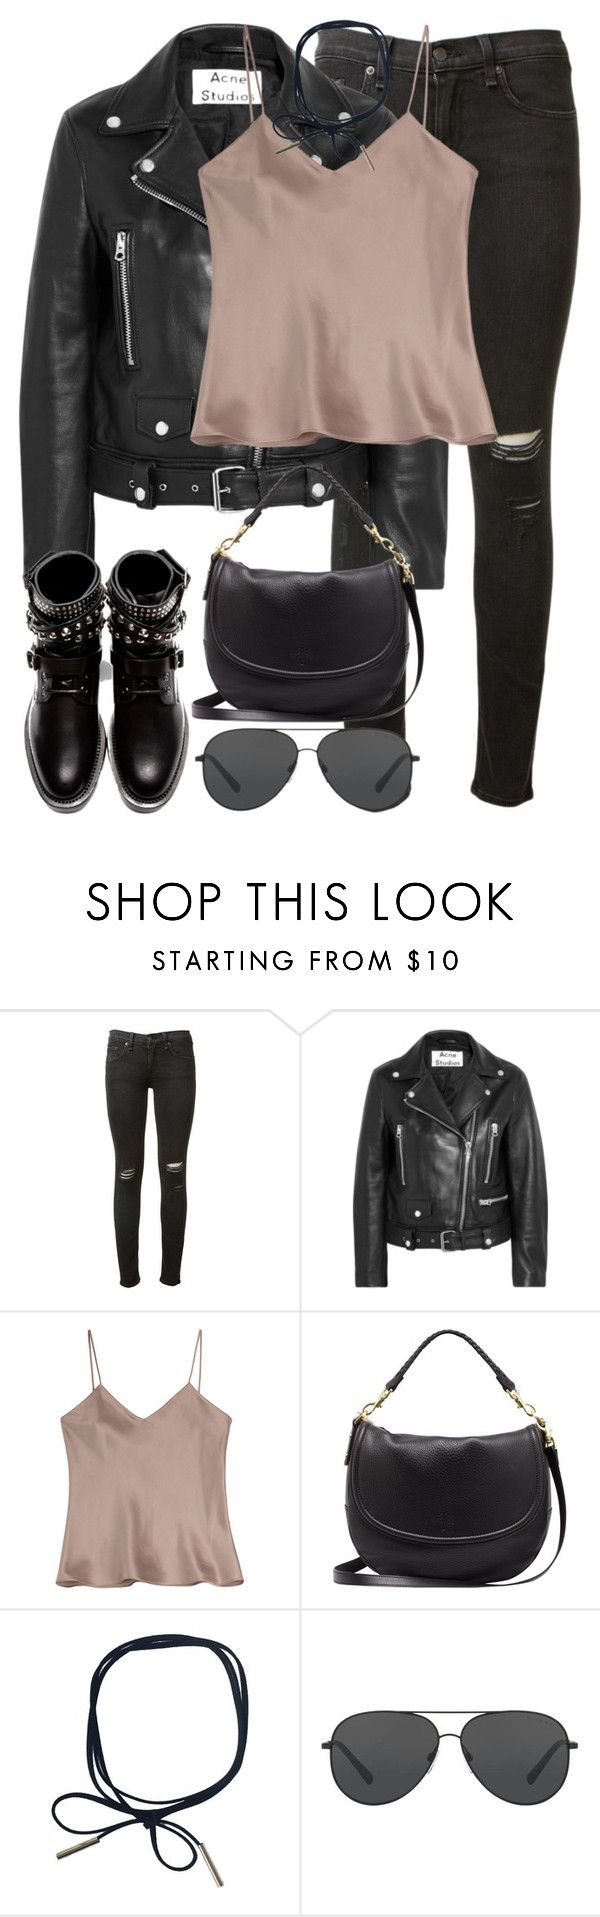 """""""Untitled #2825"""" by elenaday on Polyvore featuring rag & bone, Acne Studios, Etro, Mulberry, Michael Kors and Yves Saint Laurent"""